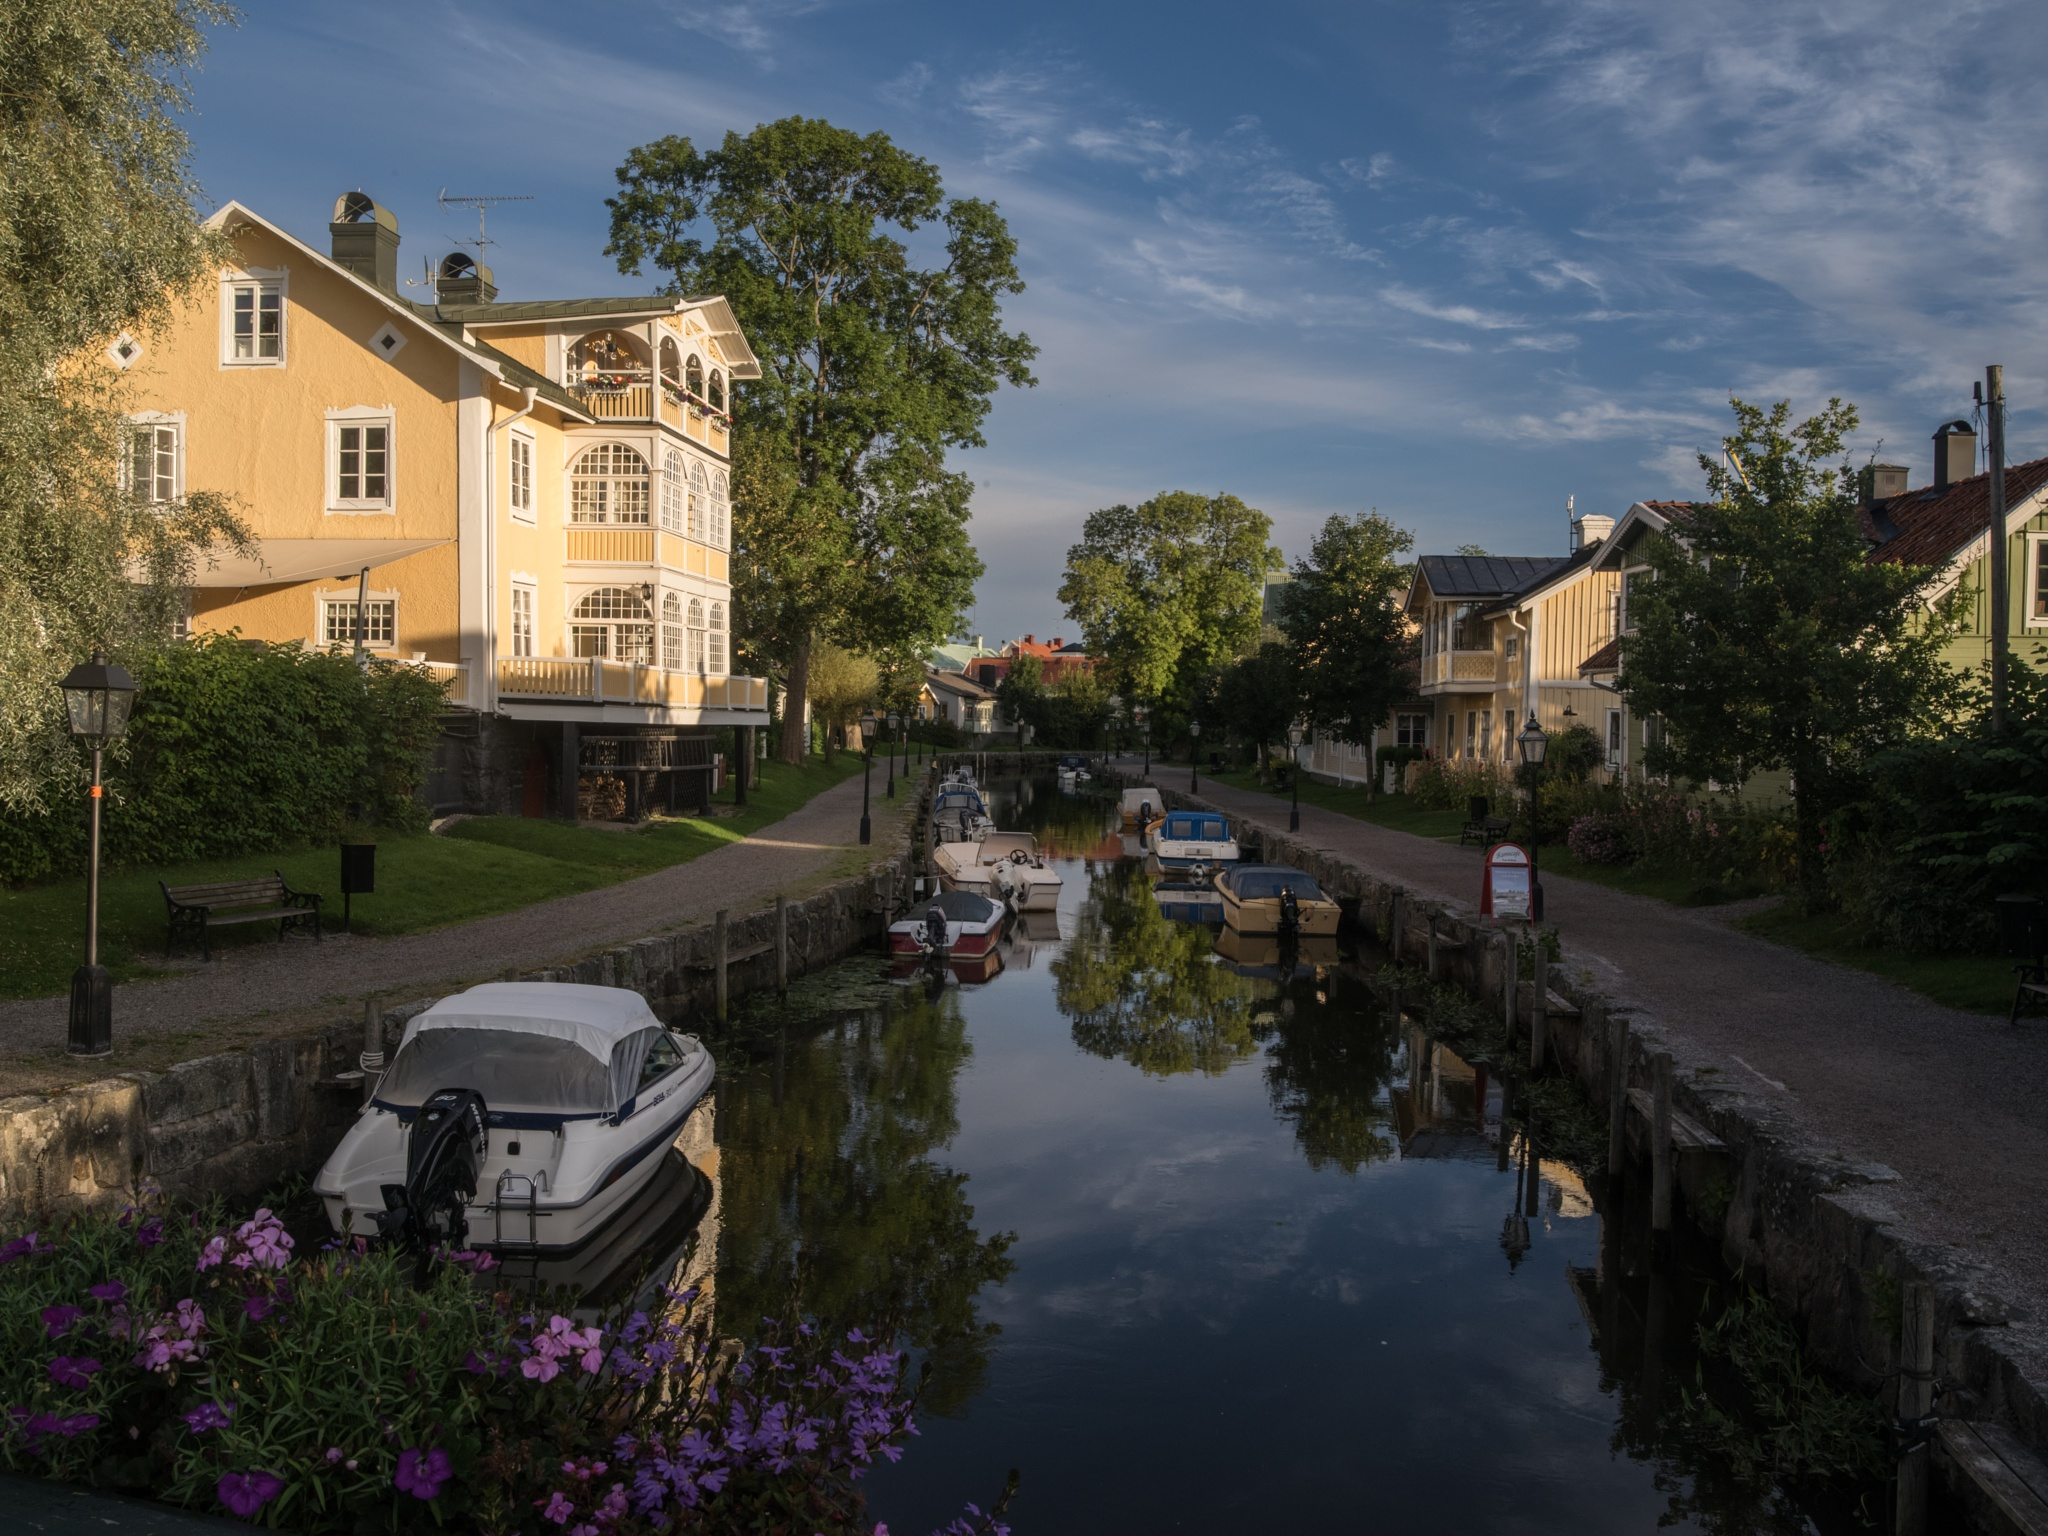 trosa3, sweden by hutchst